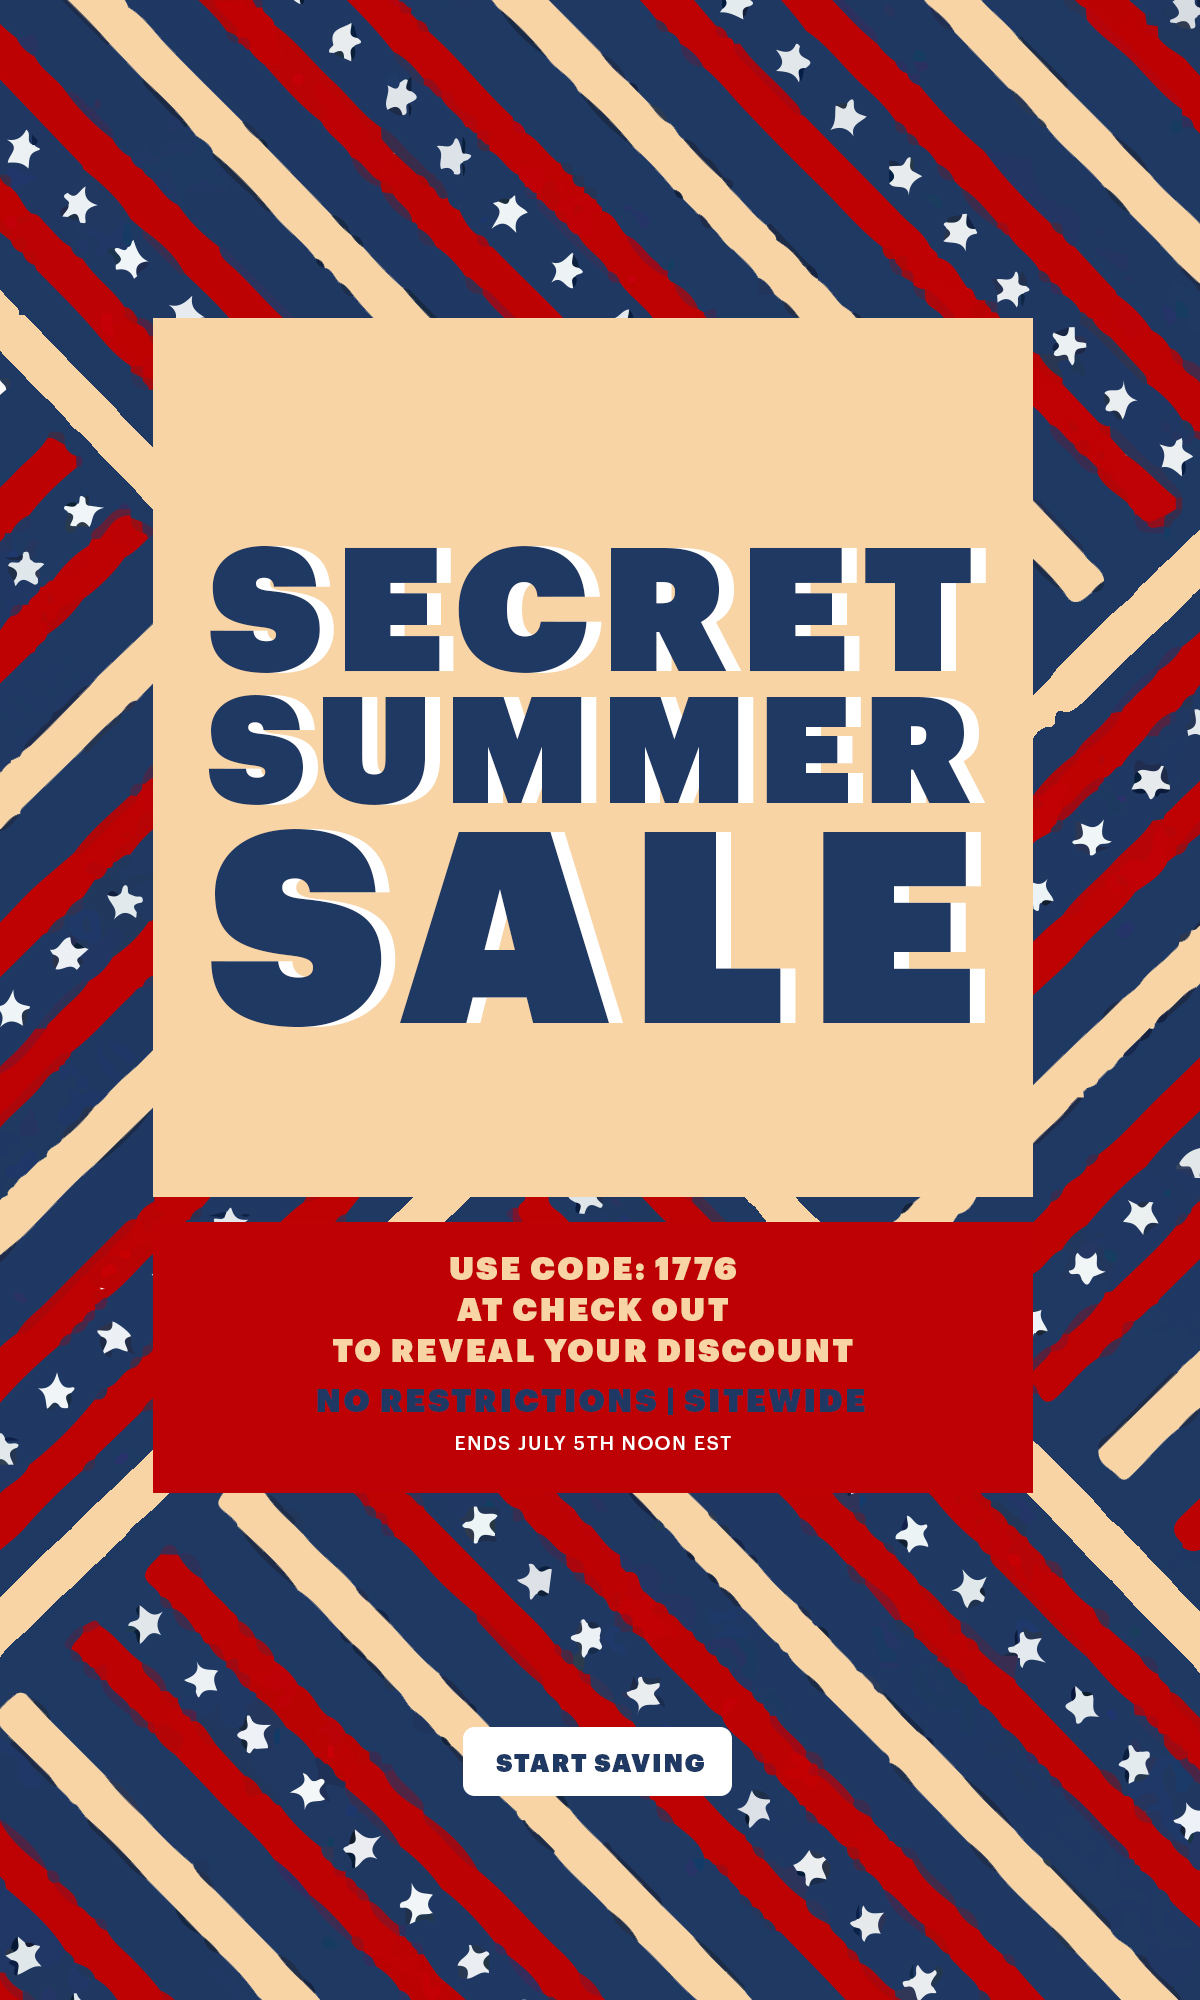 The summer secret sale is here! Use code 1776 at check out and reveal your discount. No restrictions, site wide. This is something not to be missed!